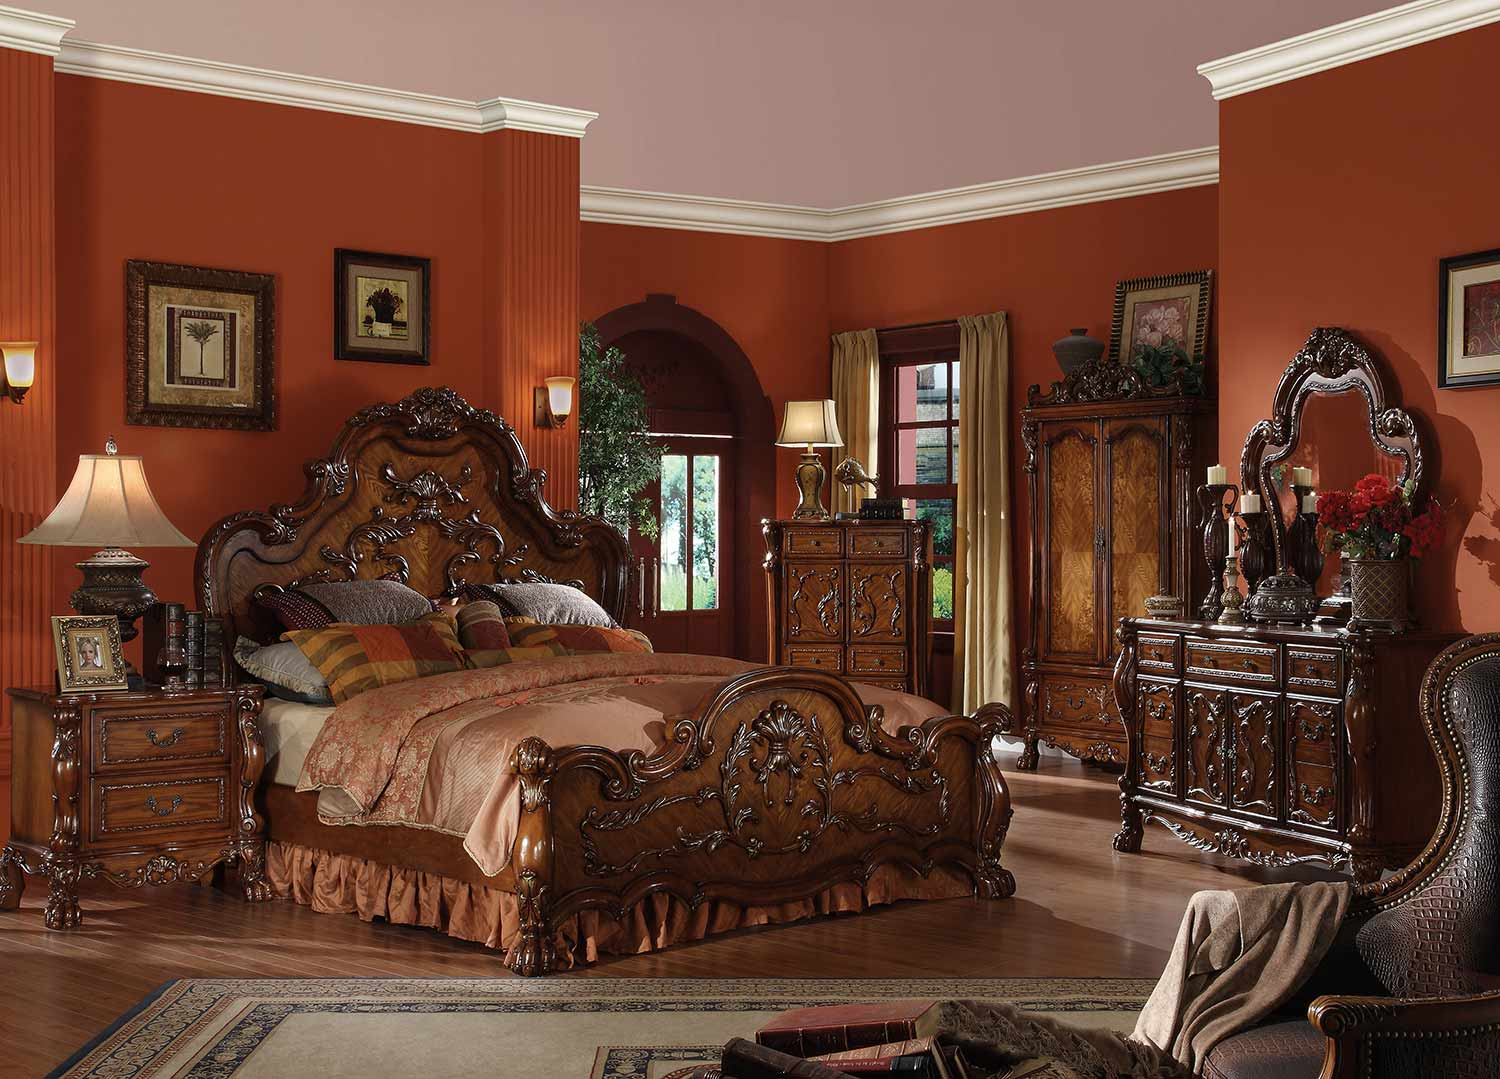 Acme Dresden Bedroom Set (Wooden HB) - Cherry Oak